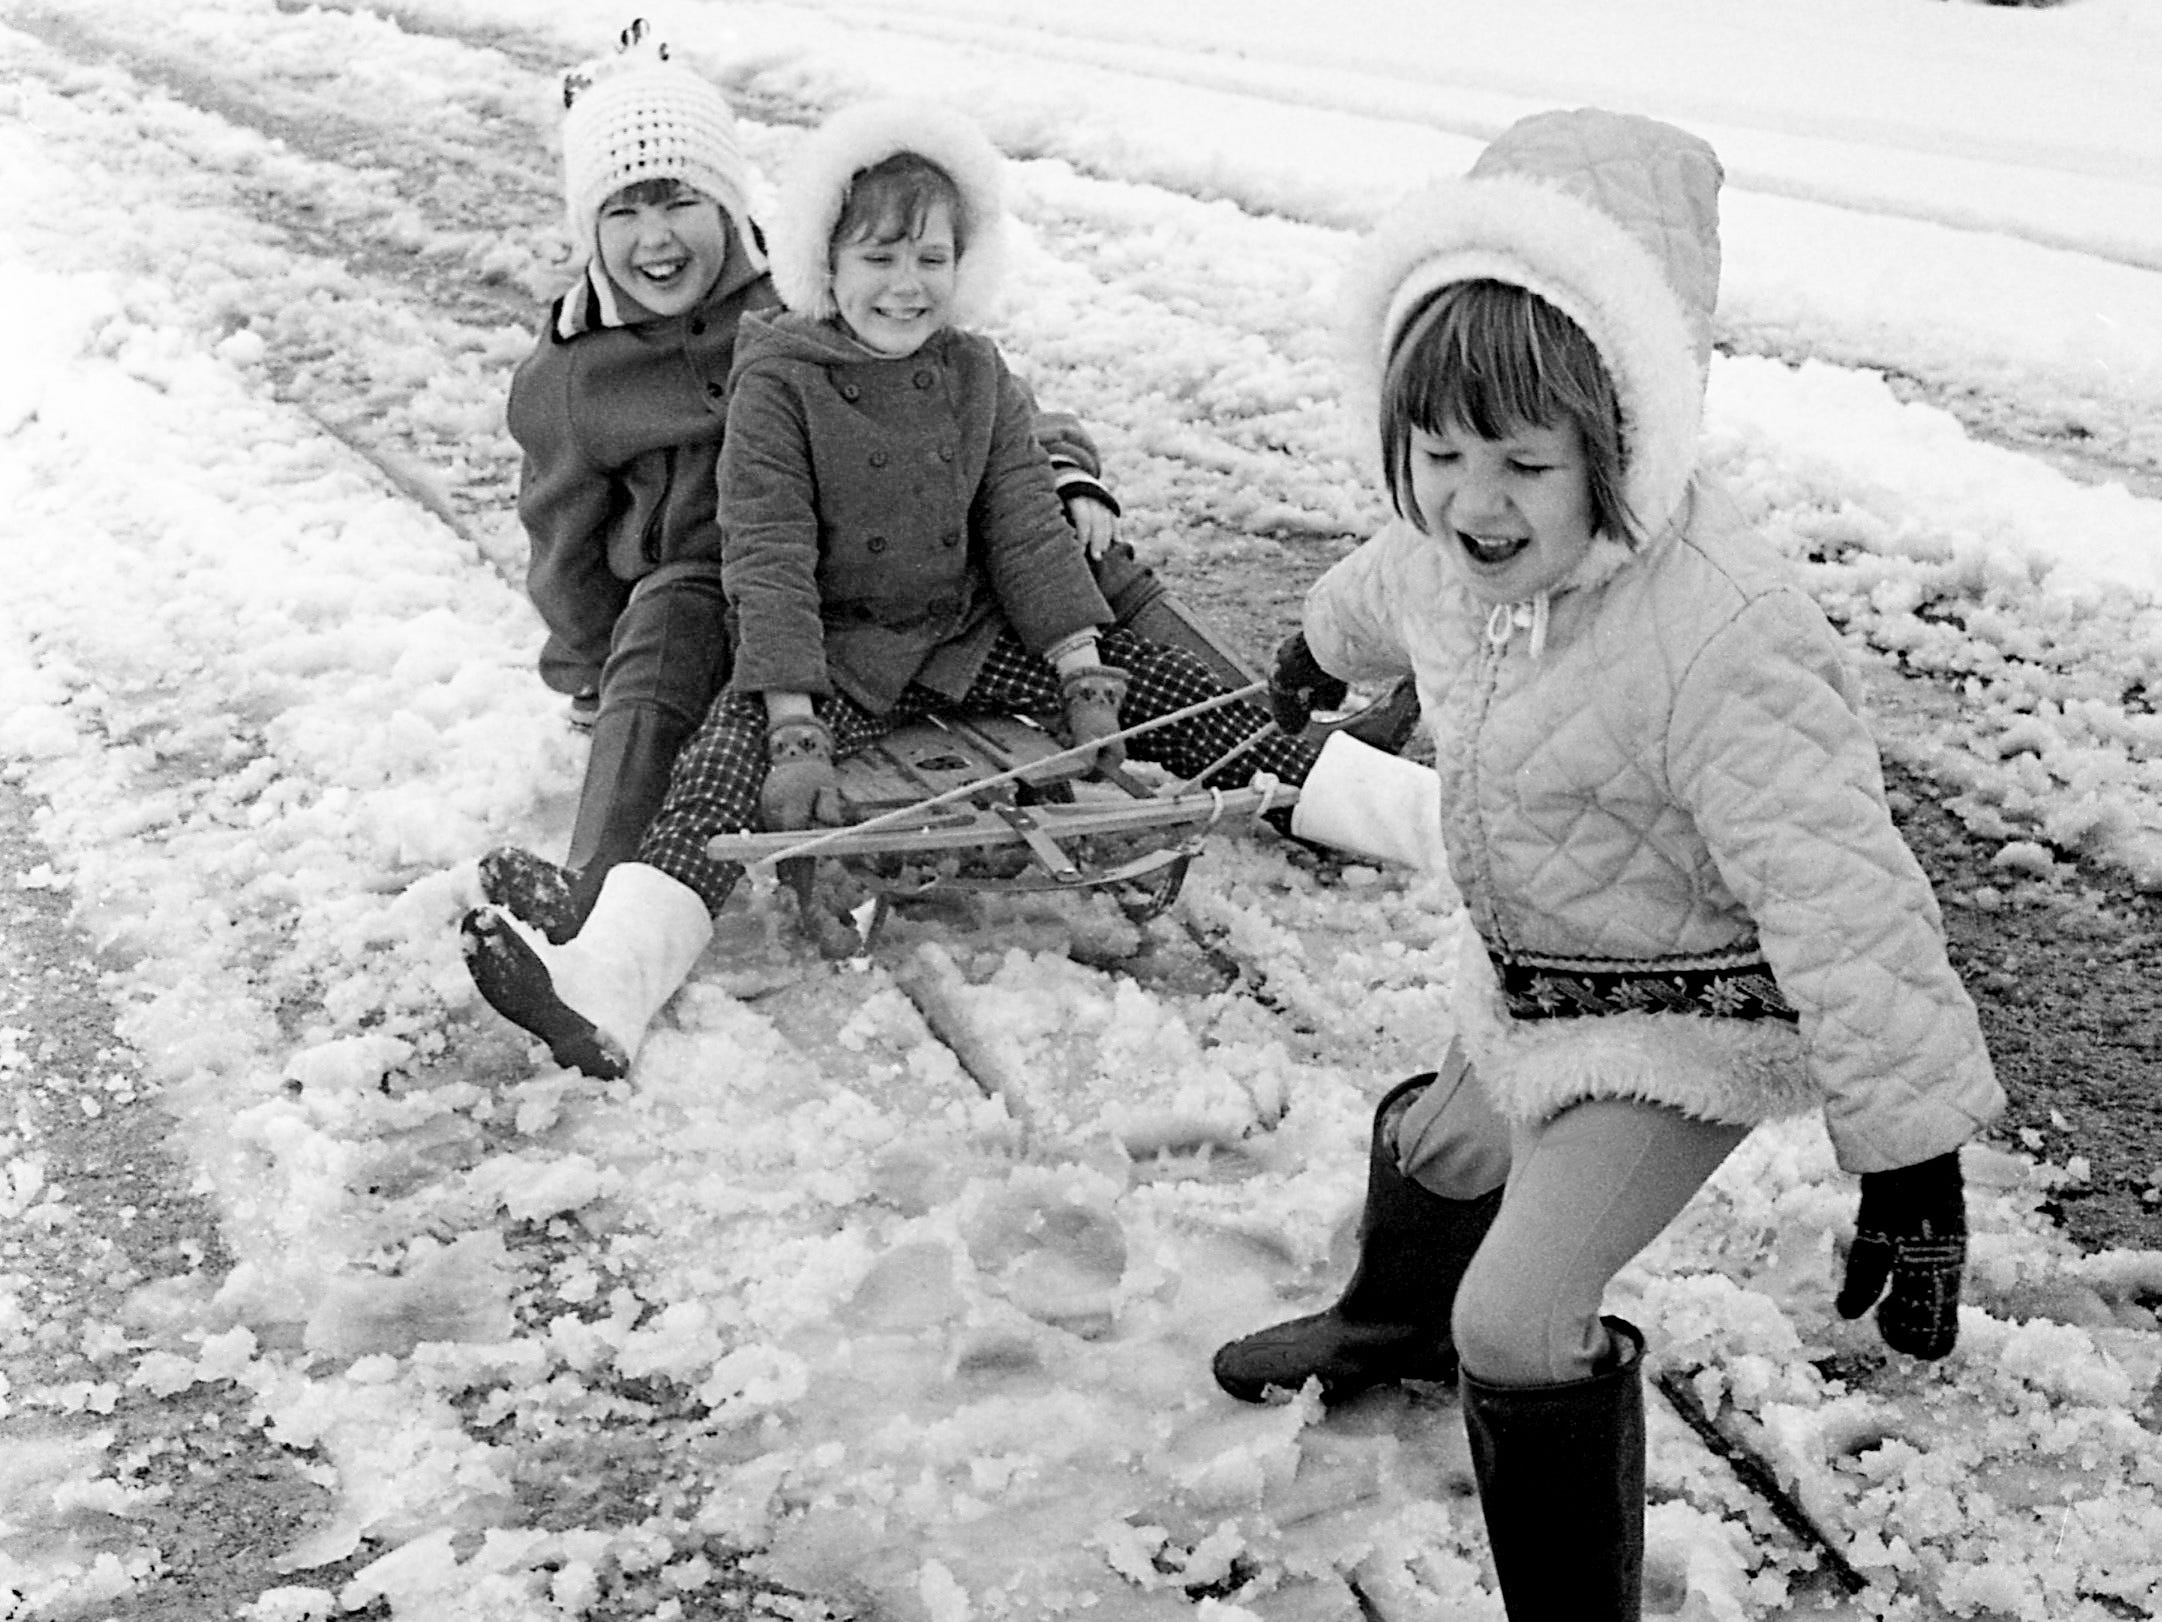 Laurie Campbell takes a turn in pulling sisters Tracey and Kim Cline on their street, Valley Park Drive, after more snow blanketed the city Jan. 27, 1969. The sisters are the daughters of Mr. and Mrs. Billy Cline, and Laurie is the daughter of Mr. and Mrs. Earl Campbell.